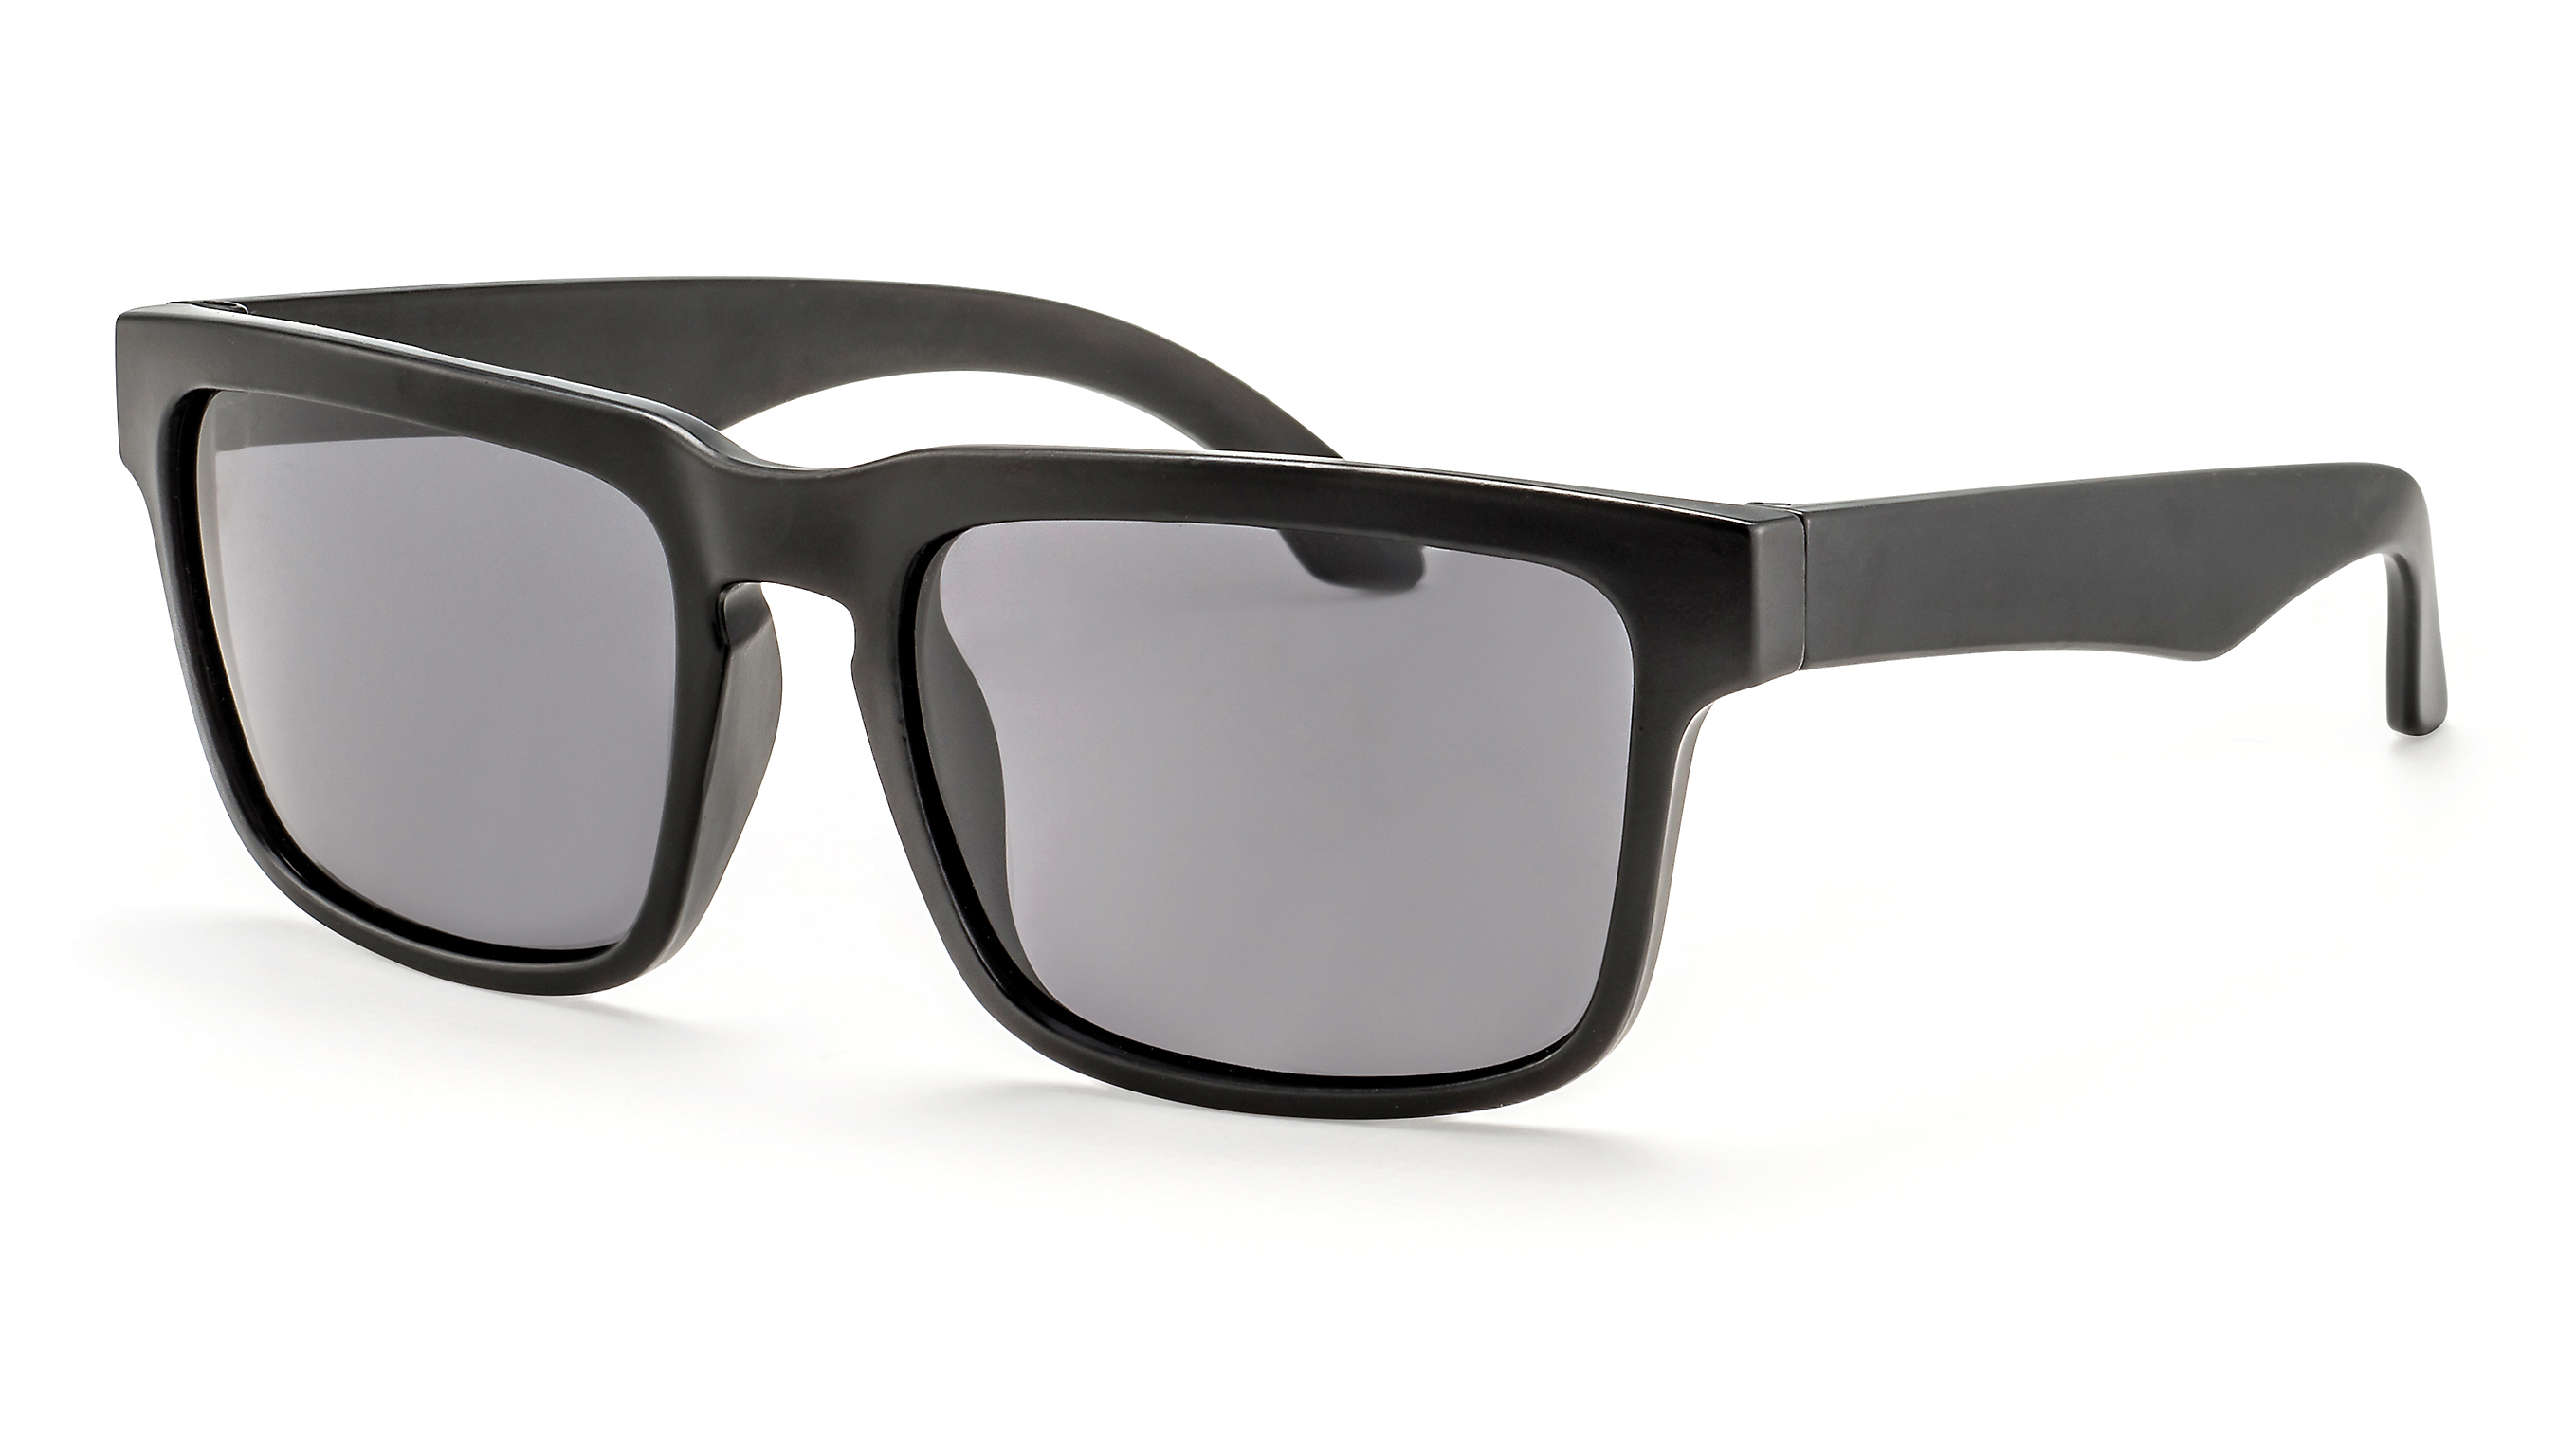 Main view sunglasses 3025108